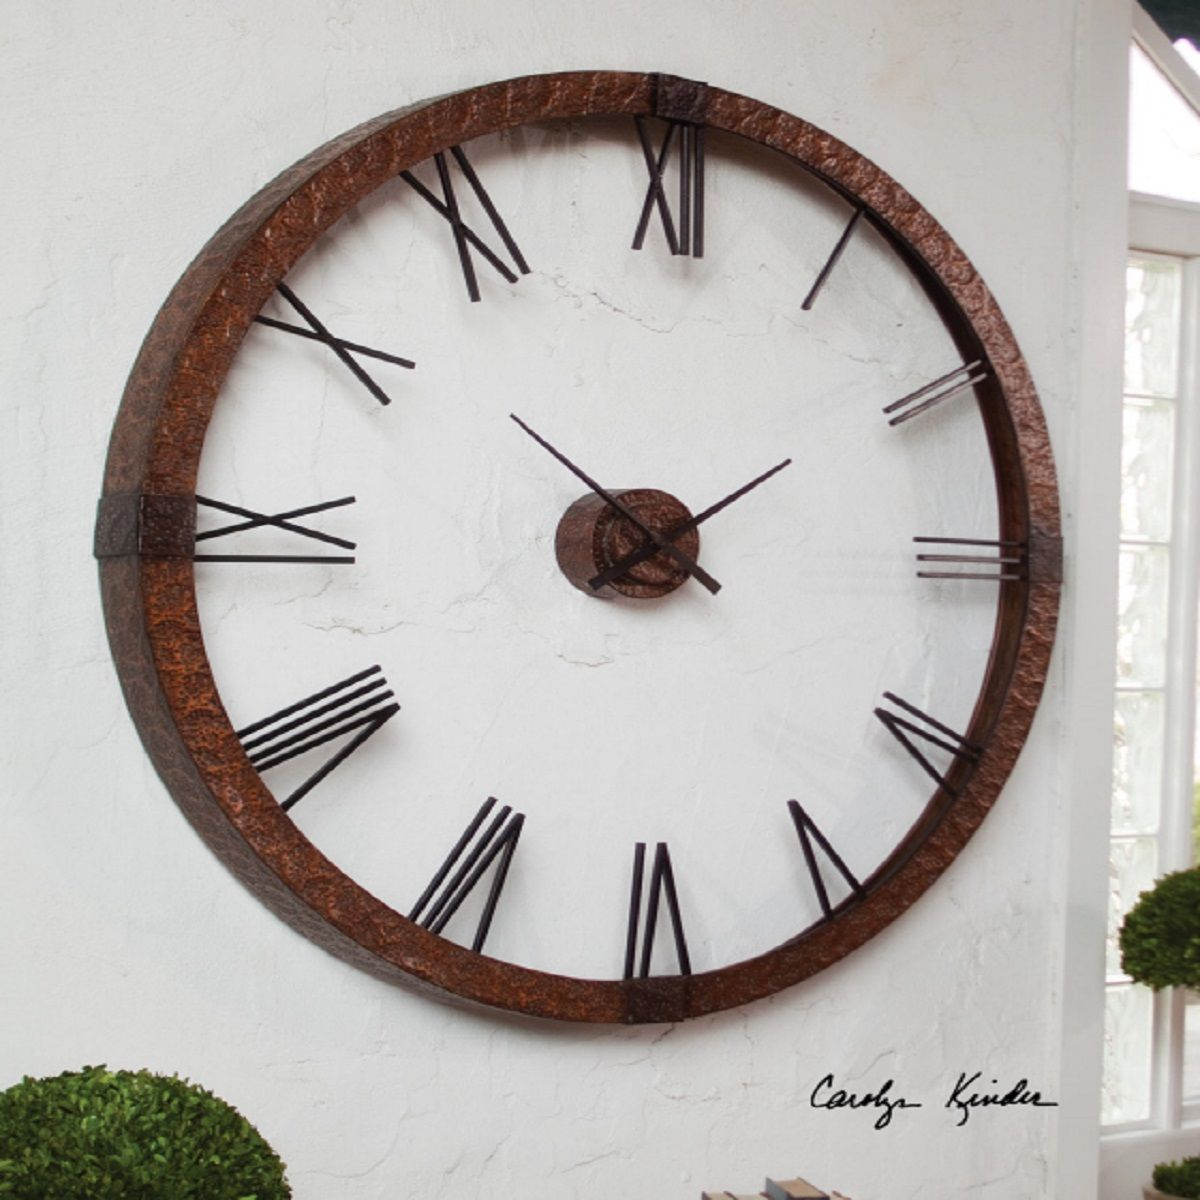 60 Large Industrial Roman Numeral Copper Wall Clock In 2021 Wall Clock Modern Wall Clock Copper Wall